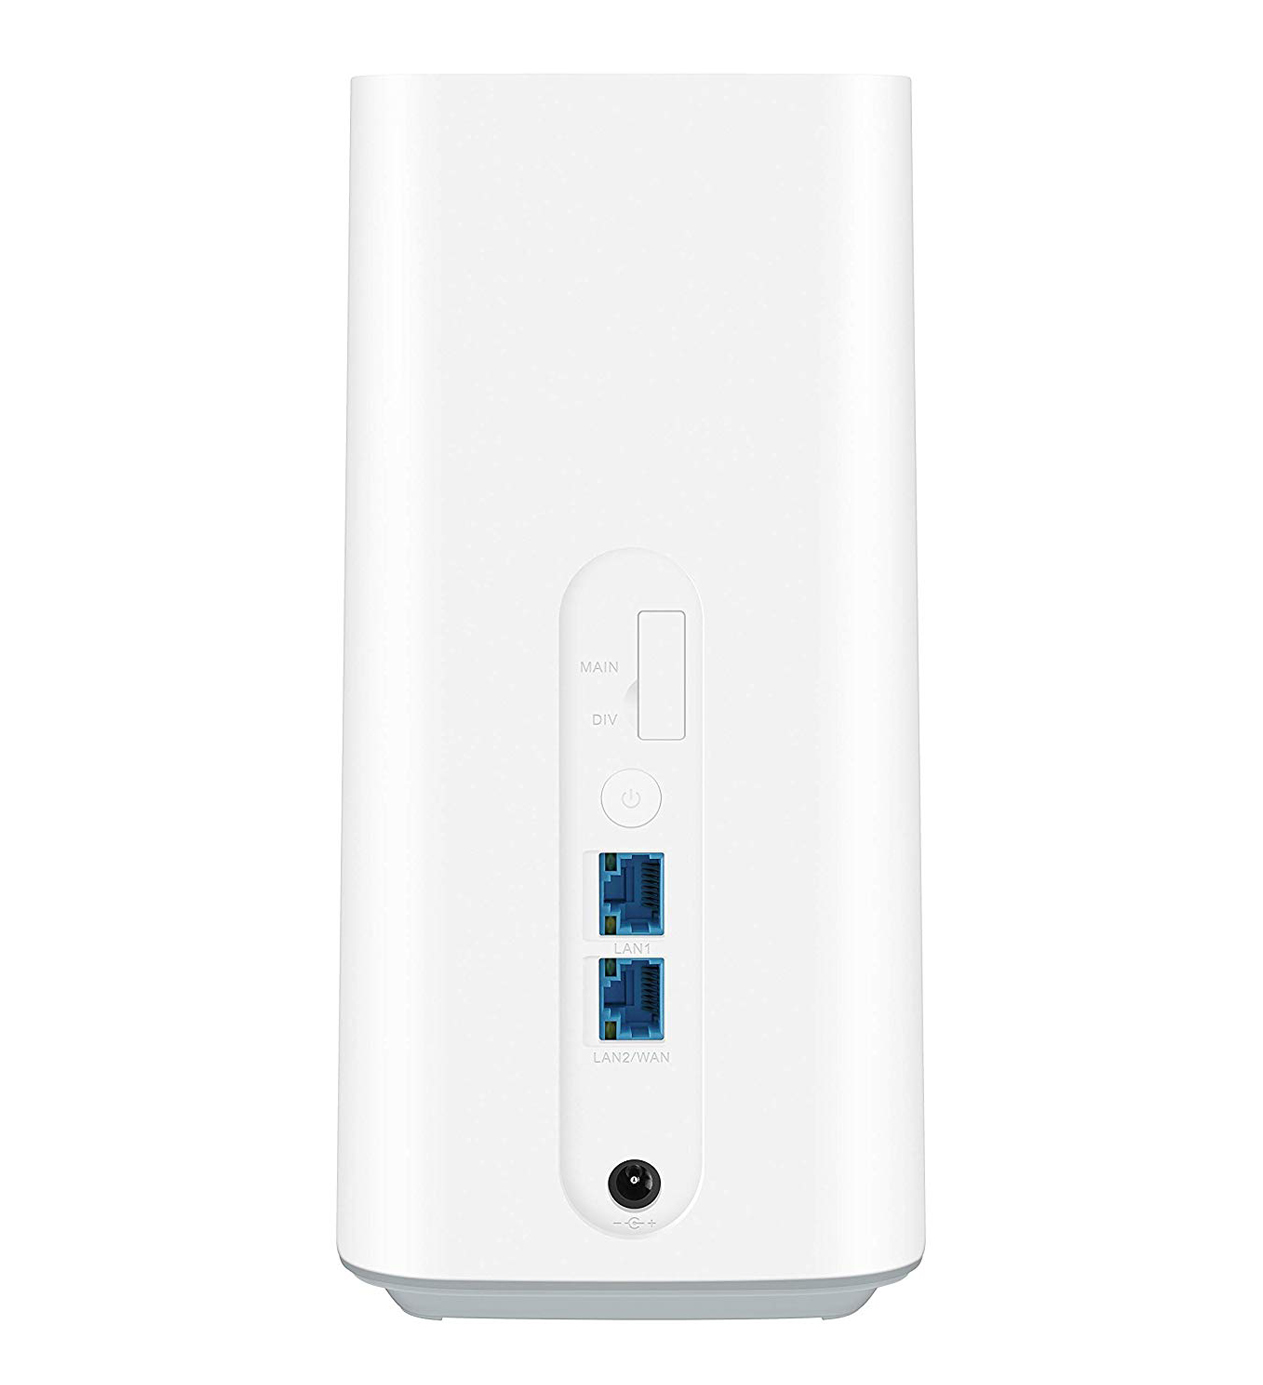 Huawei 5G Router ports